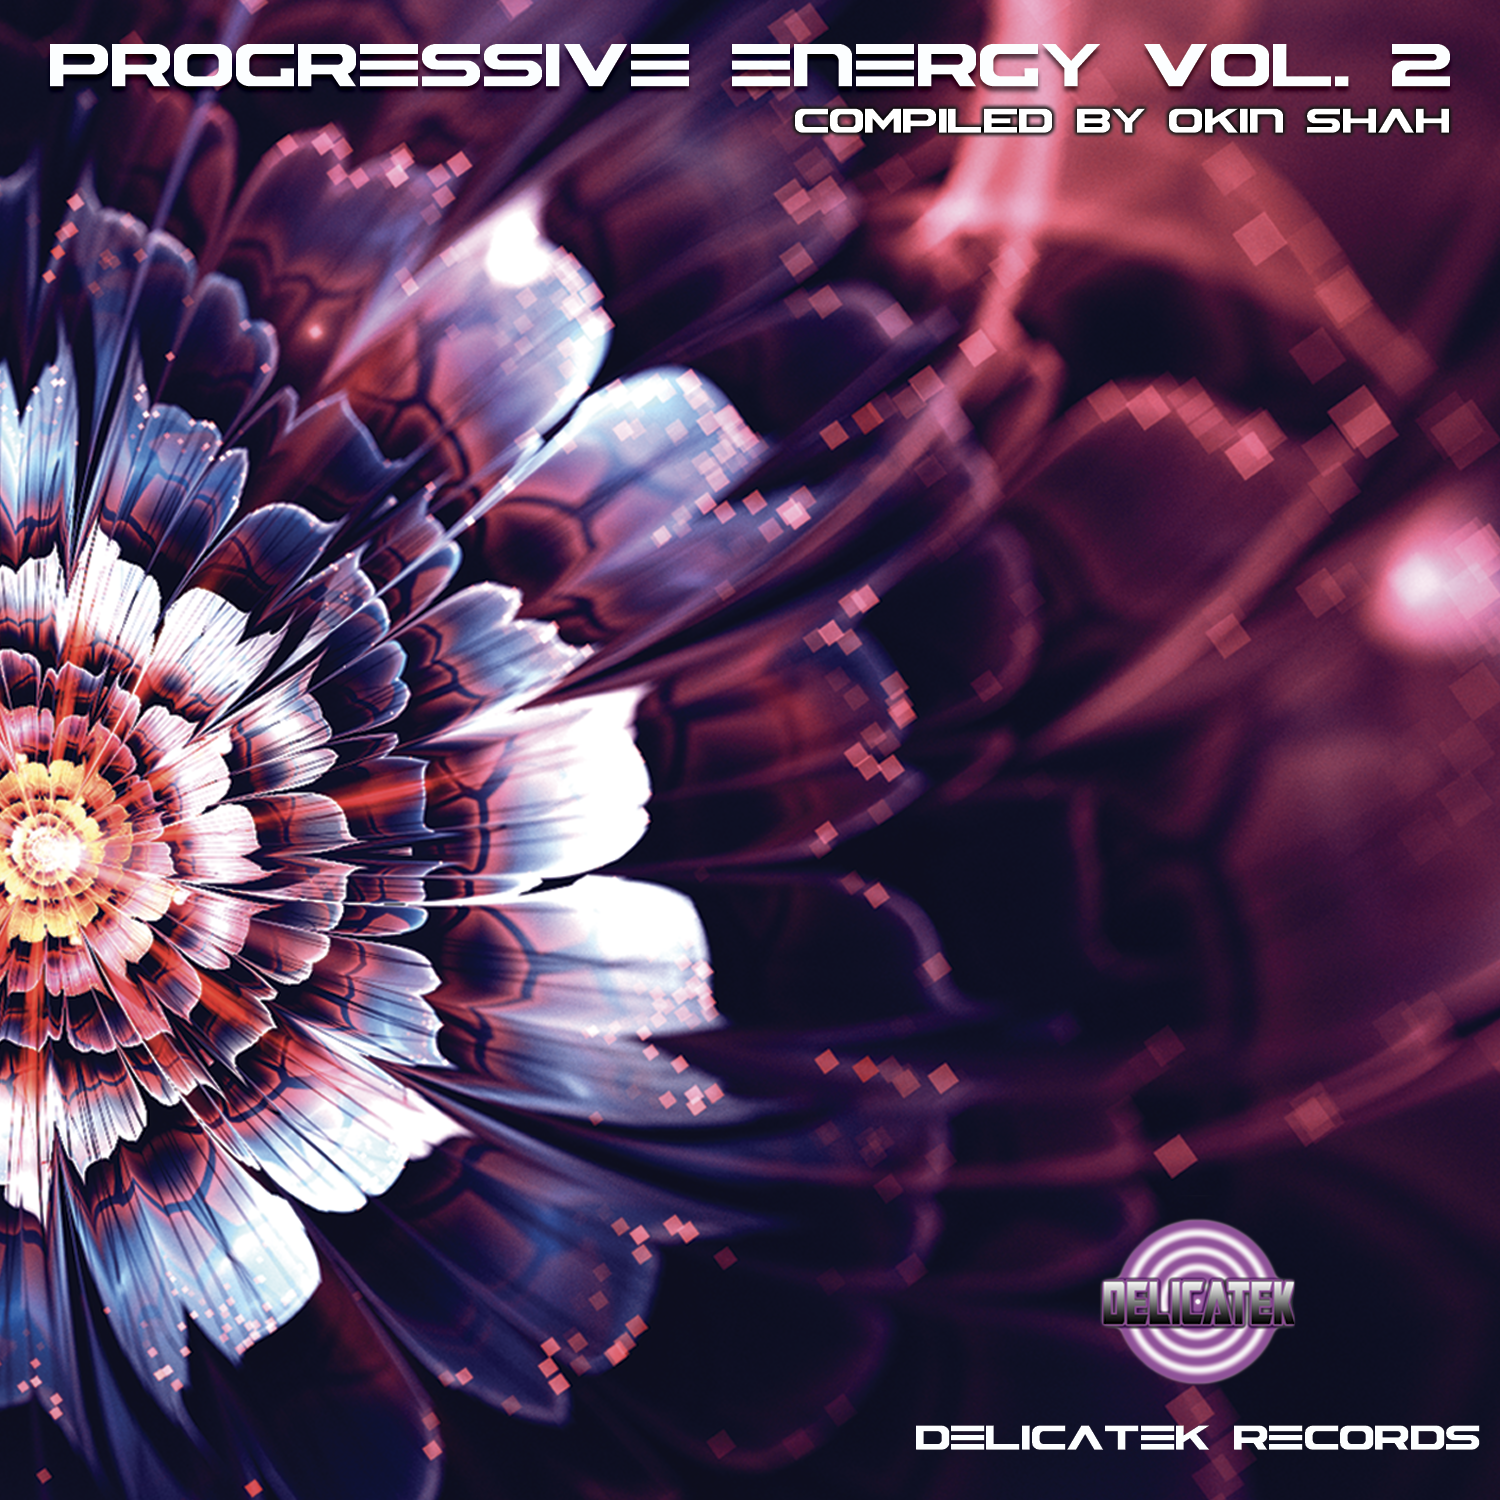 Progressive Energy vol.2 Artwork